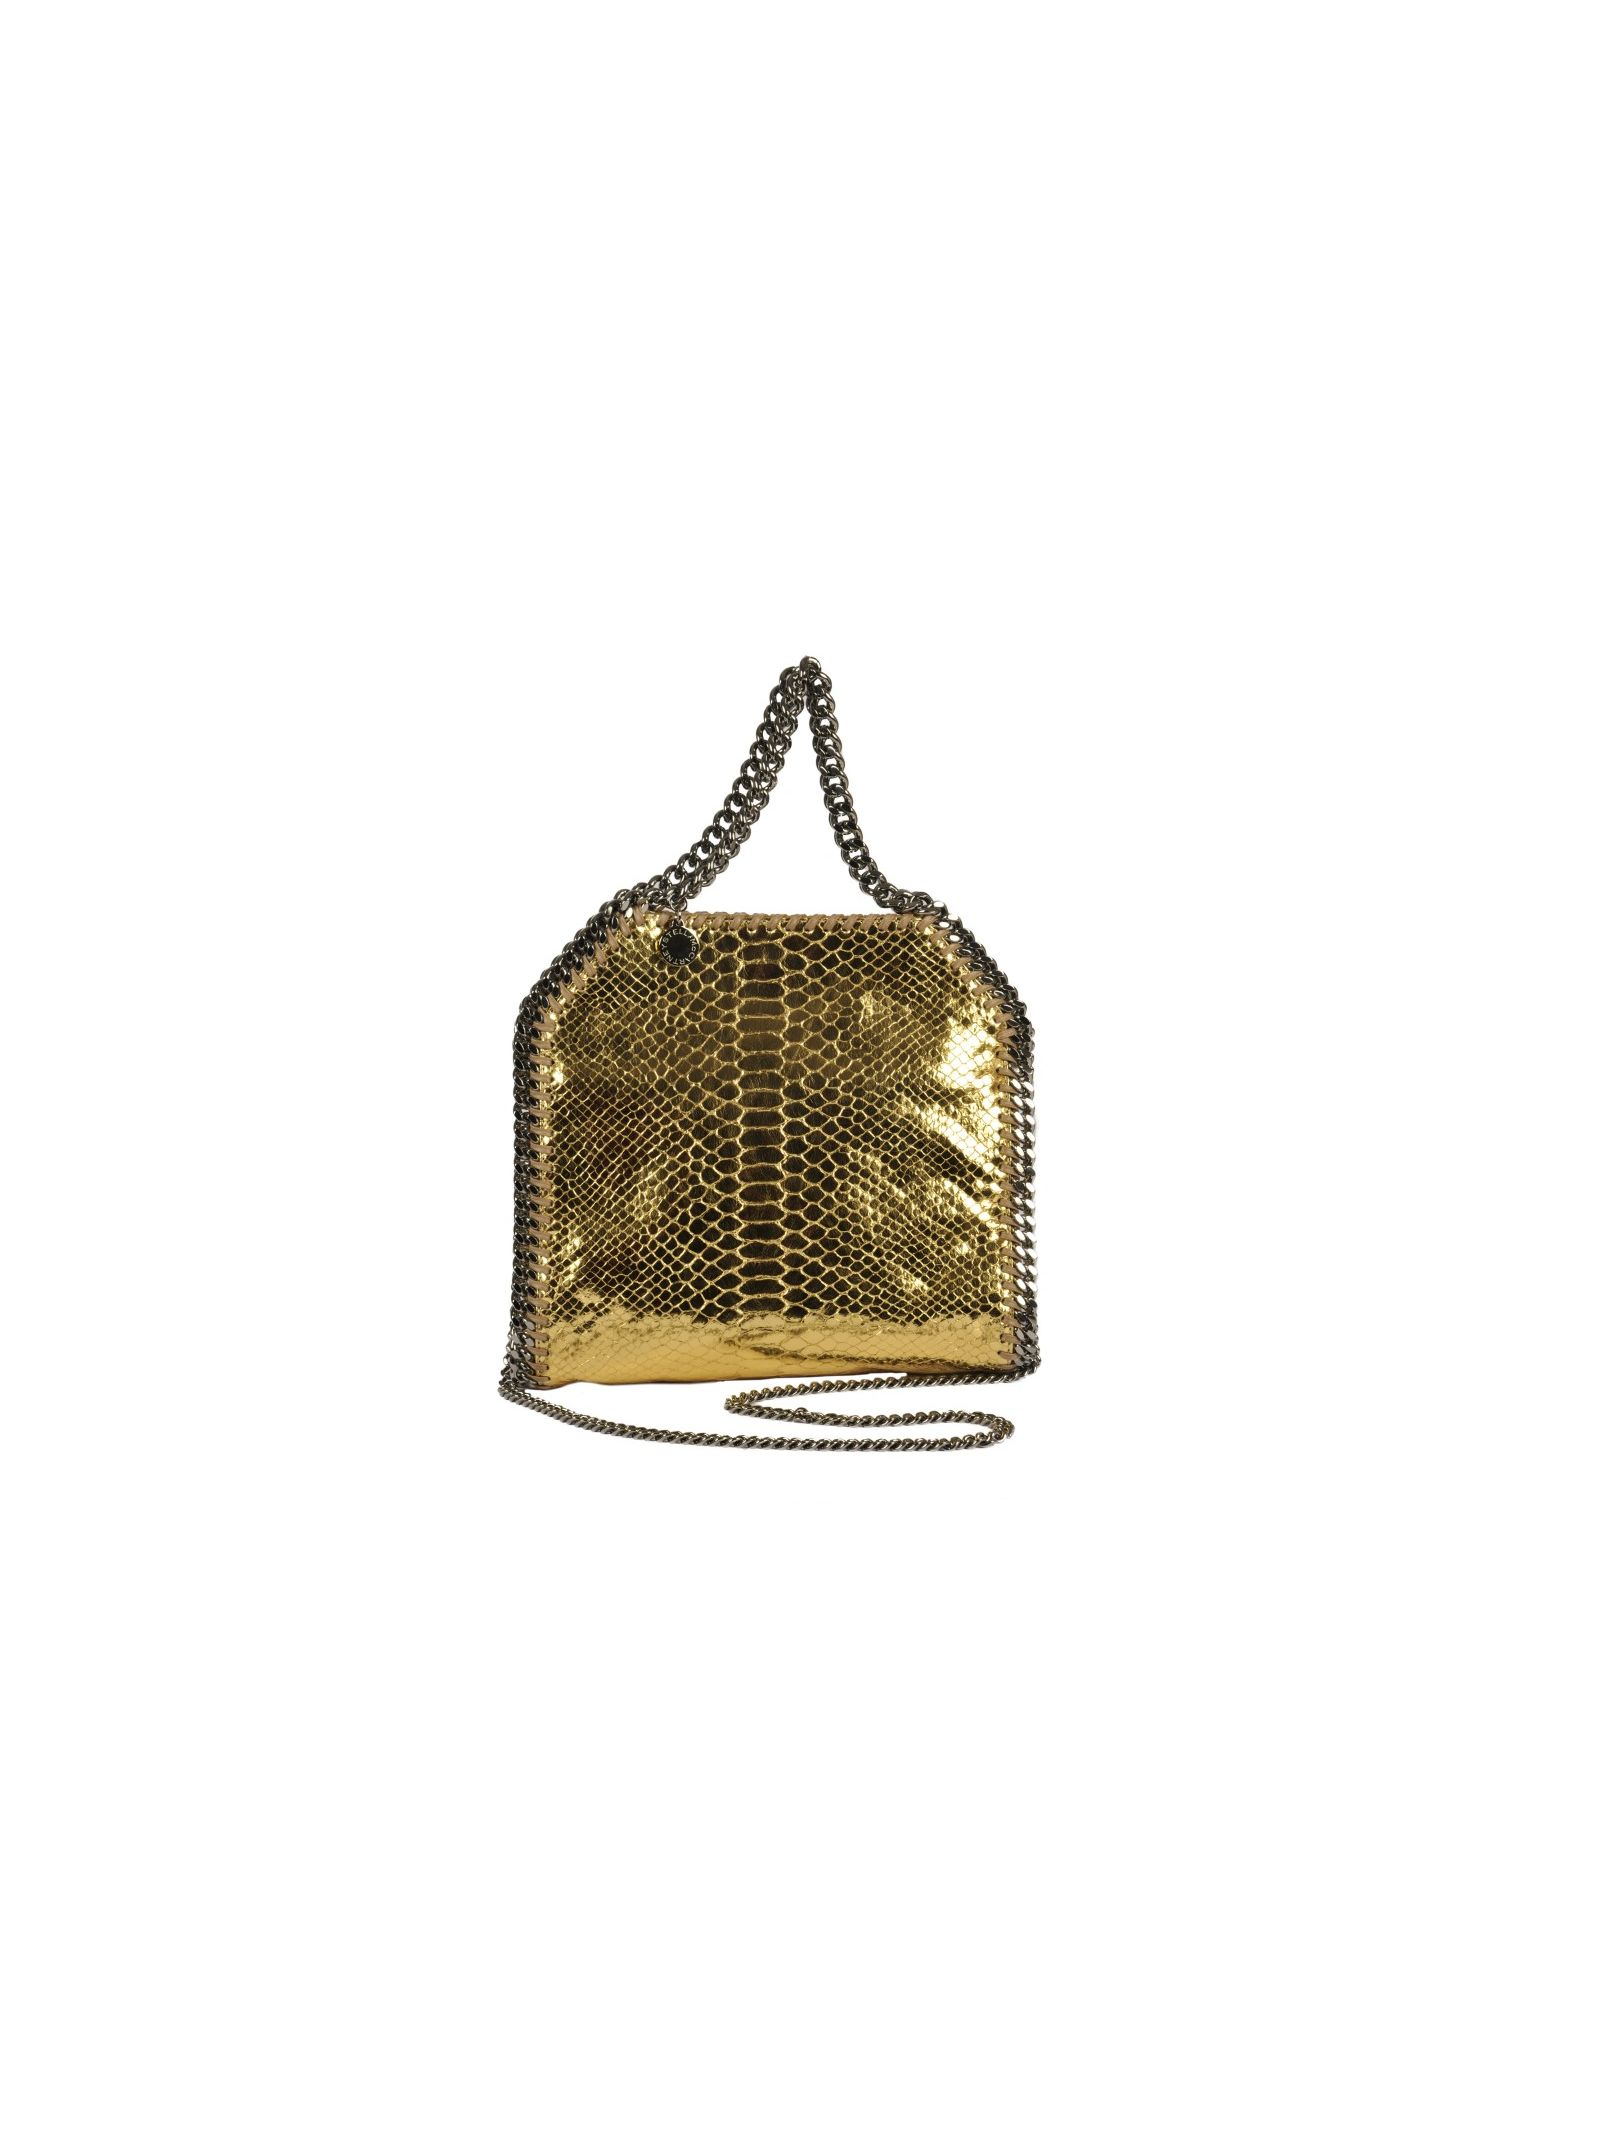 mini falabella metallic snake tote from stella mccartney: gold mini falabella metallic snake tote with top handles, silver-tone chain trim, silver-tone chain shoulder strap, top magnetic closure and internal slip pocket.